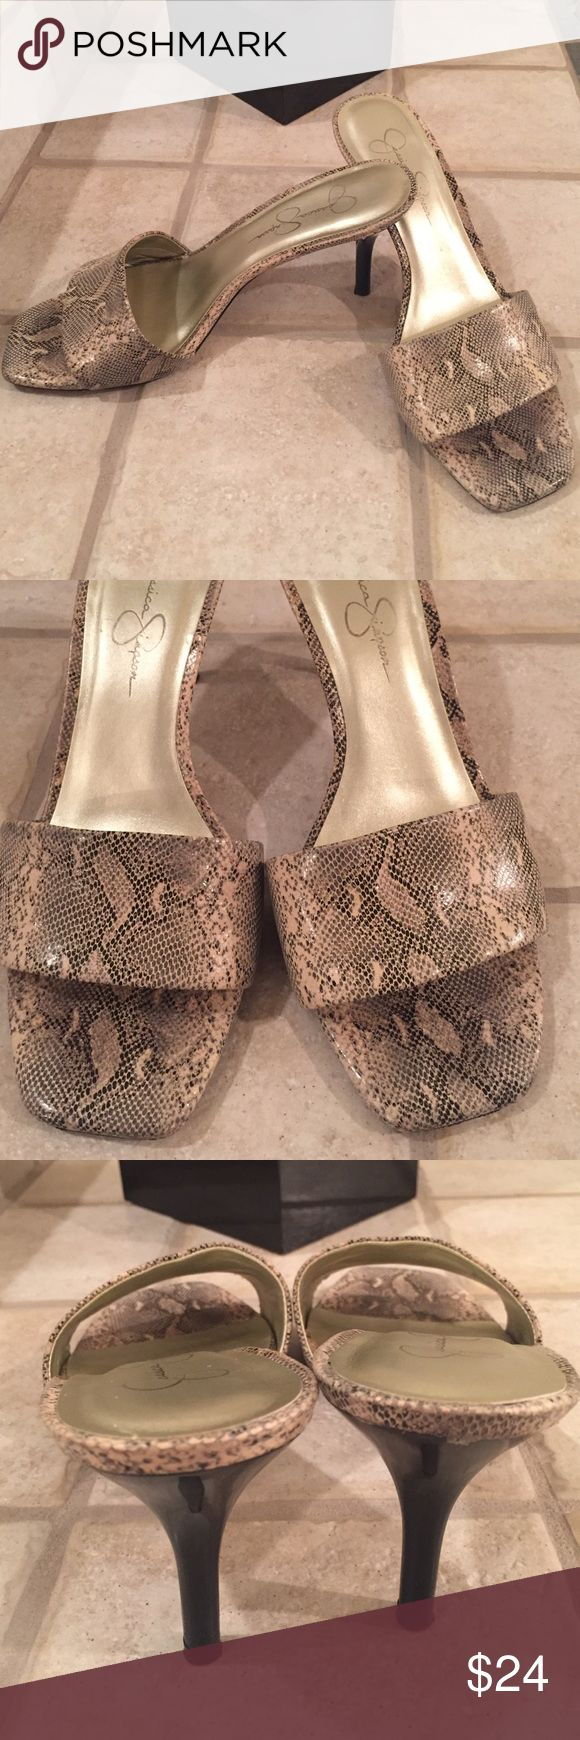 """Jessica Simpson Snake Skin Heels Size 8.5 B Jessica Simpson """"Clarina"""" slip on open toe heels Size 8.5B. 3"""" heel height. Super comfortable! Worn but have plenty of life left in them. 🚫Trades Jessica Simpson Shoes Sandals"""